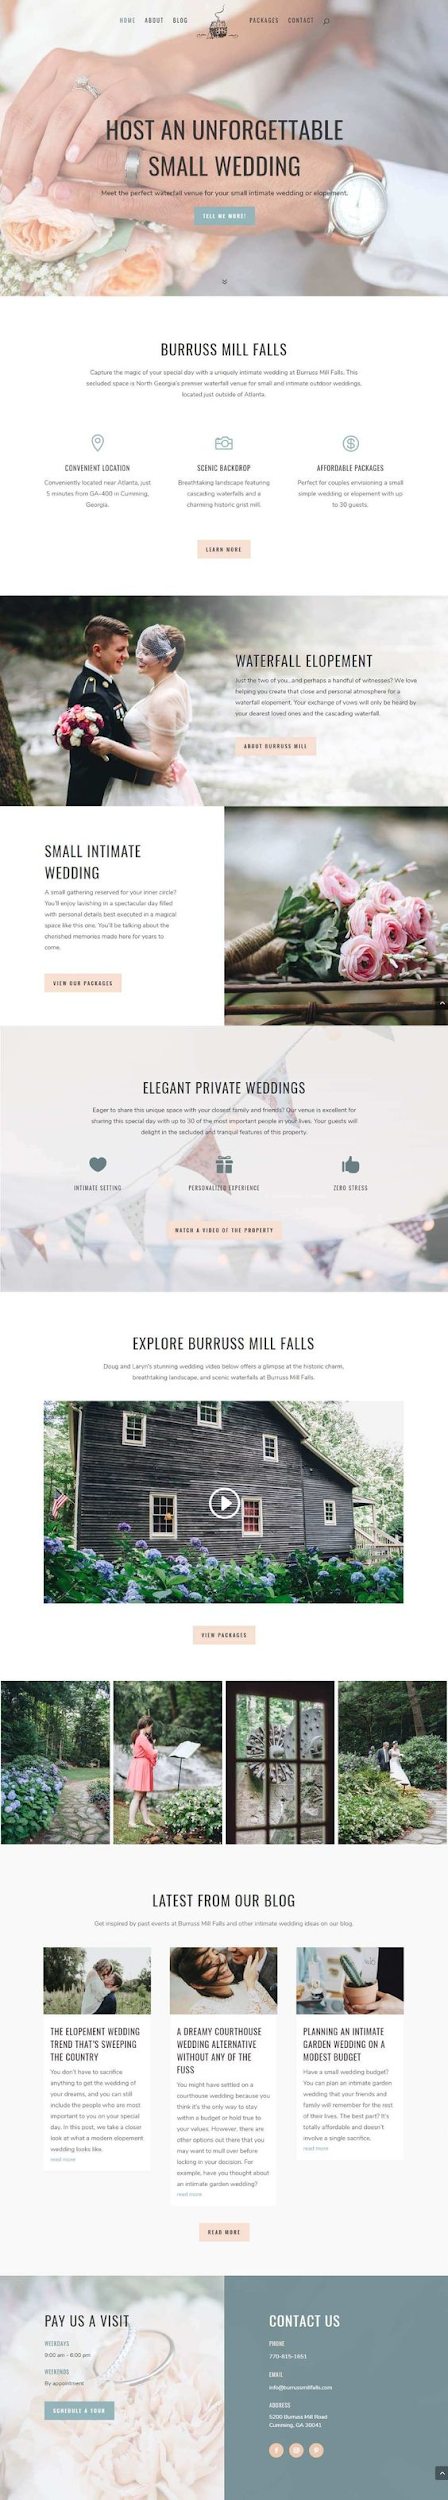 Joan Aldrich Web Design via Junction Creative Studio - pinterest ad examples - Tips from the pros